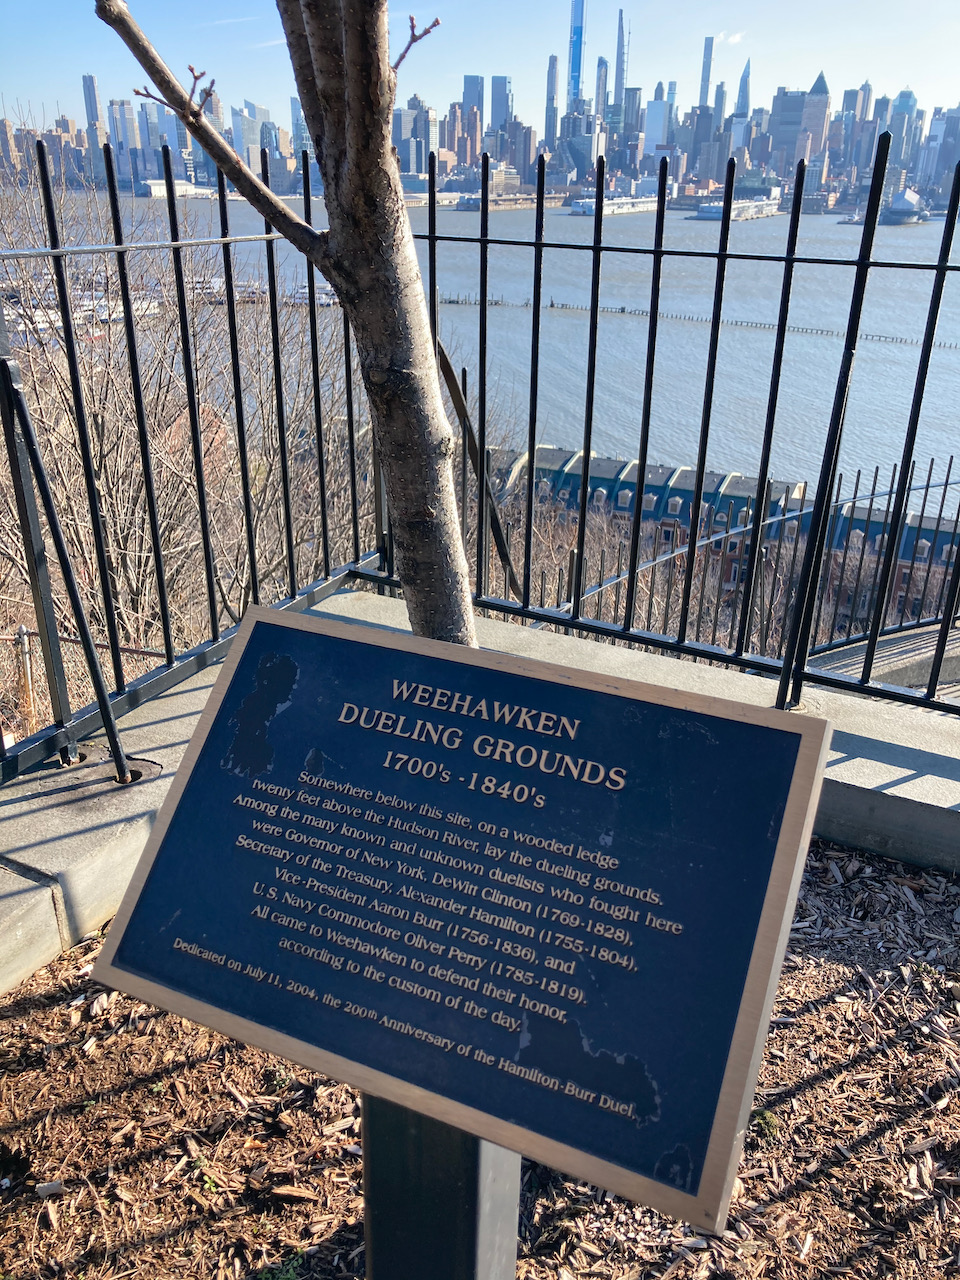 Plaque with description of Weehawken Dueling Grounds 1700s - 1840s, with view of Hudson River and Manhattan skyline in distance.